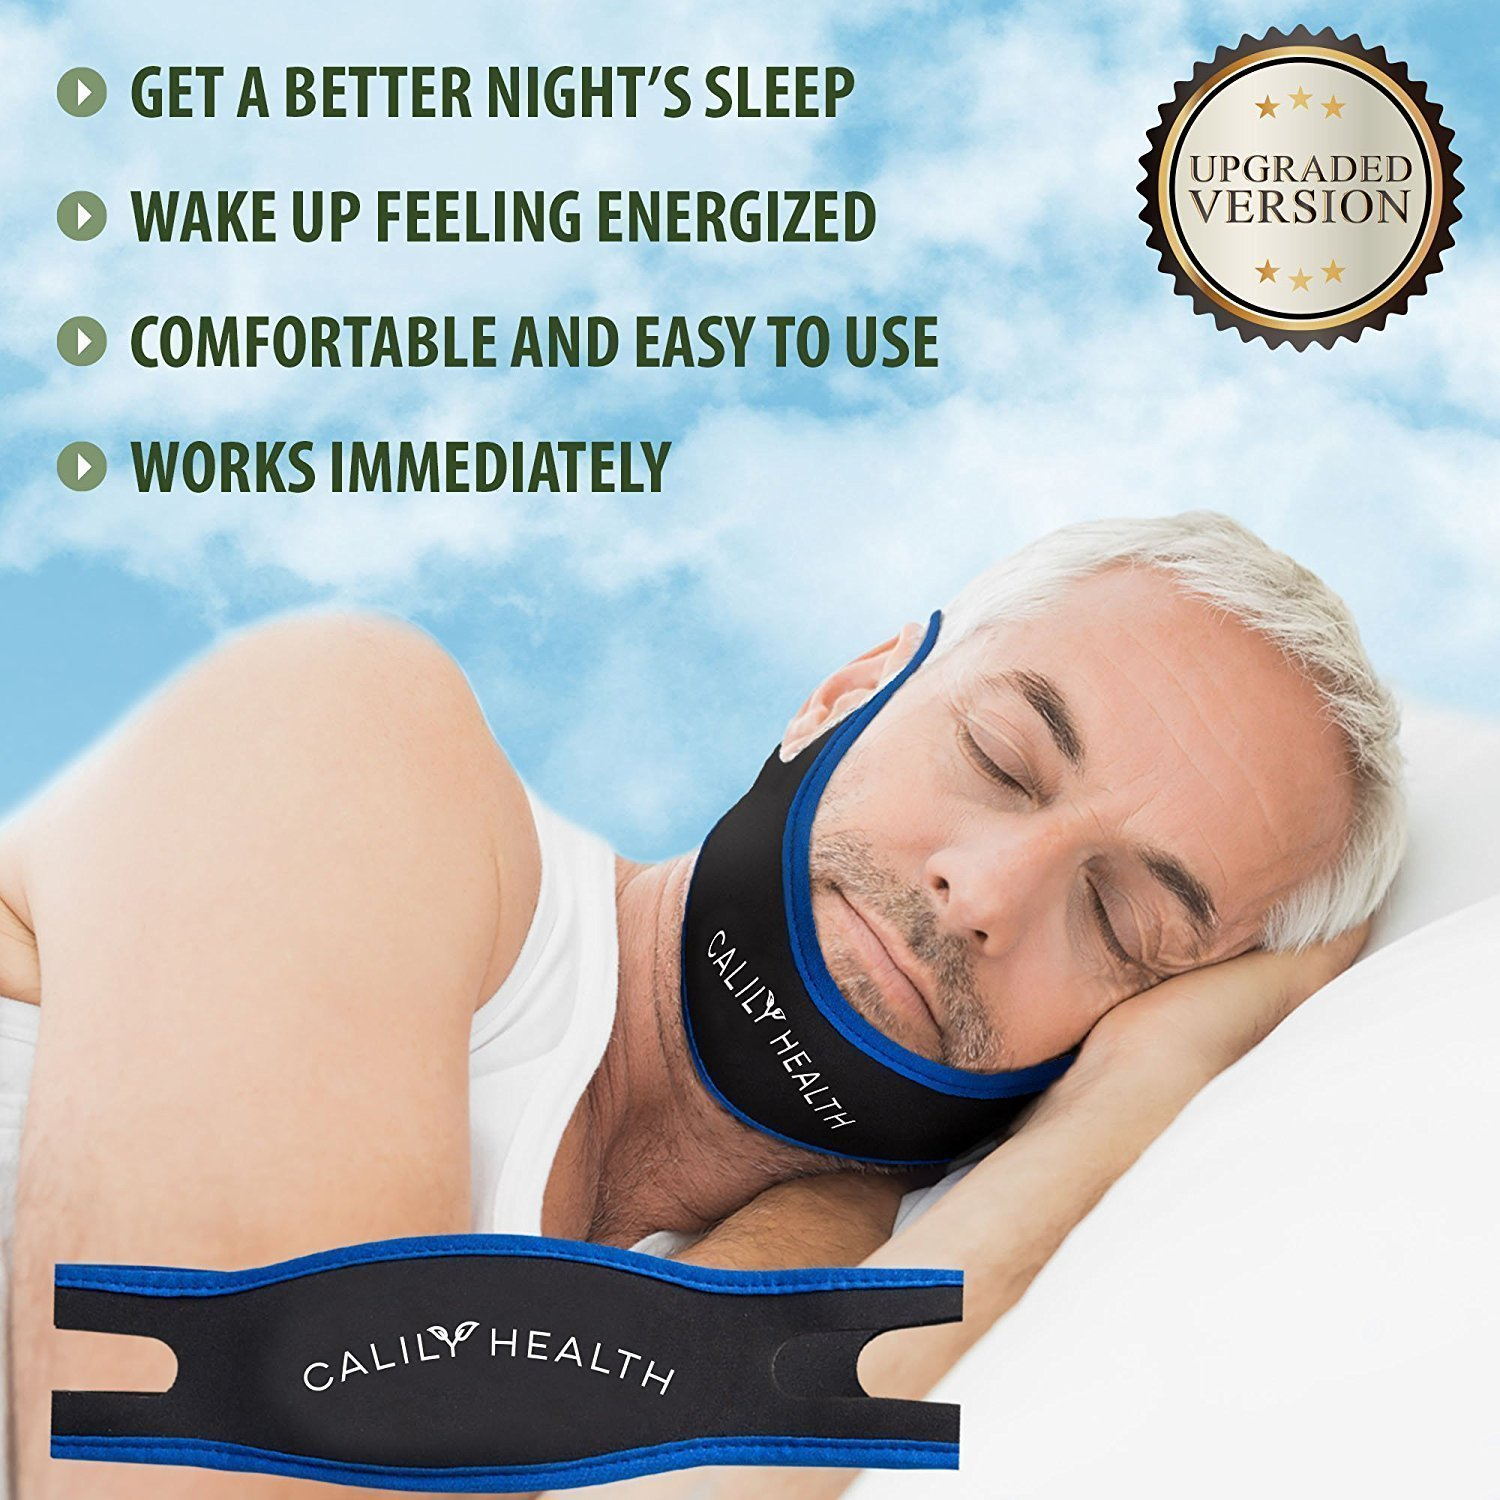 Overcome Snoring - Causes and Cures (Health and Wellness Series Book 1)